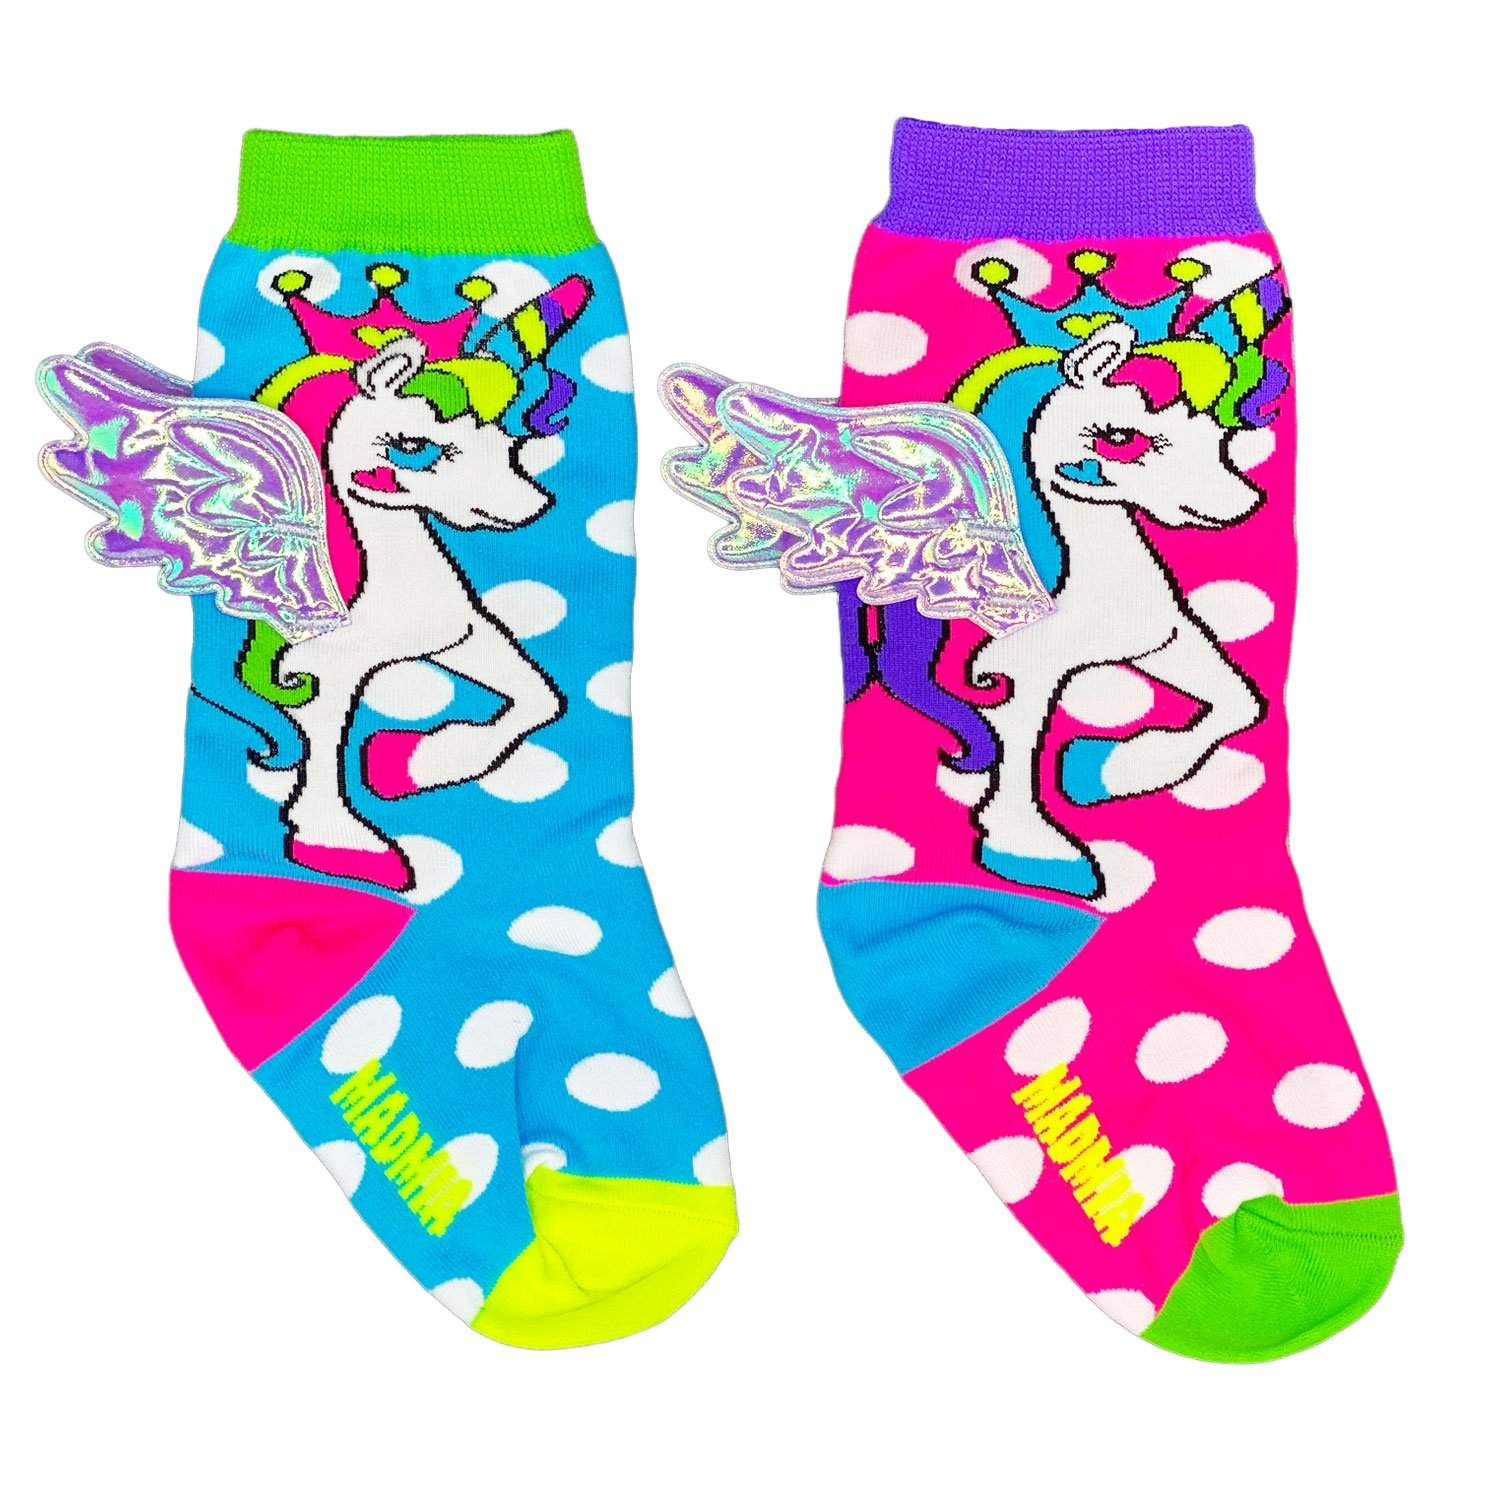 FLYING UNICORN BABY SOCKS